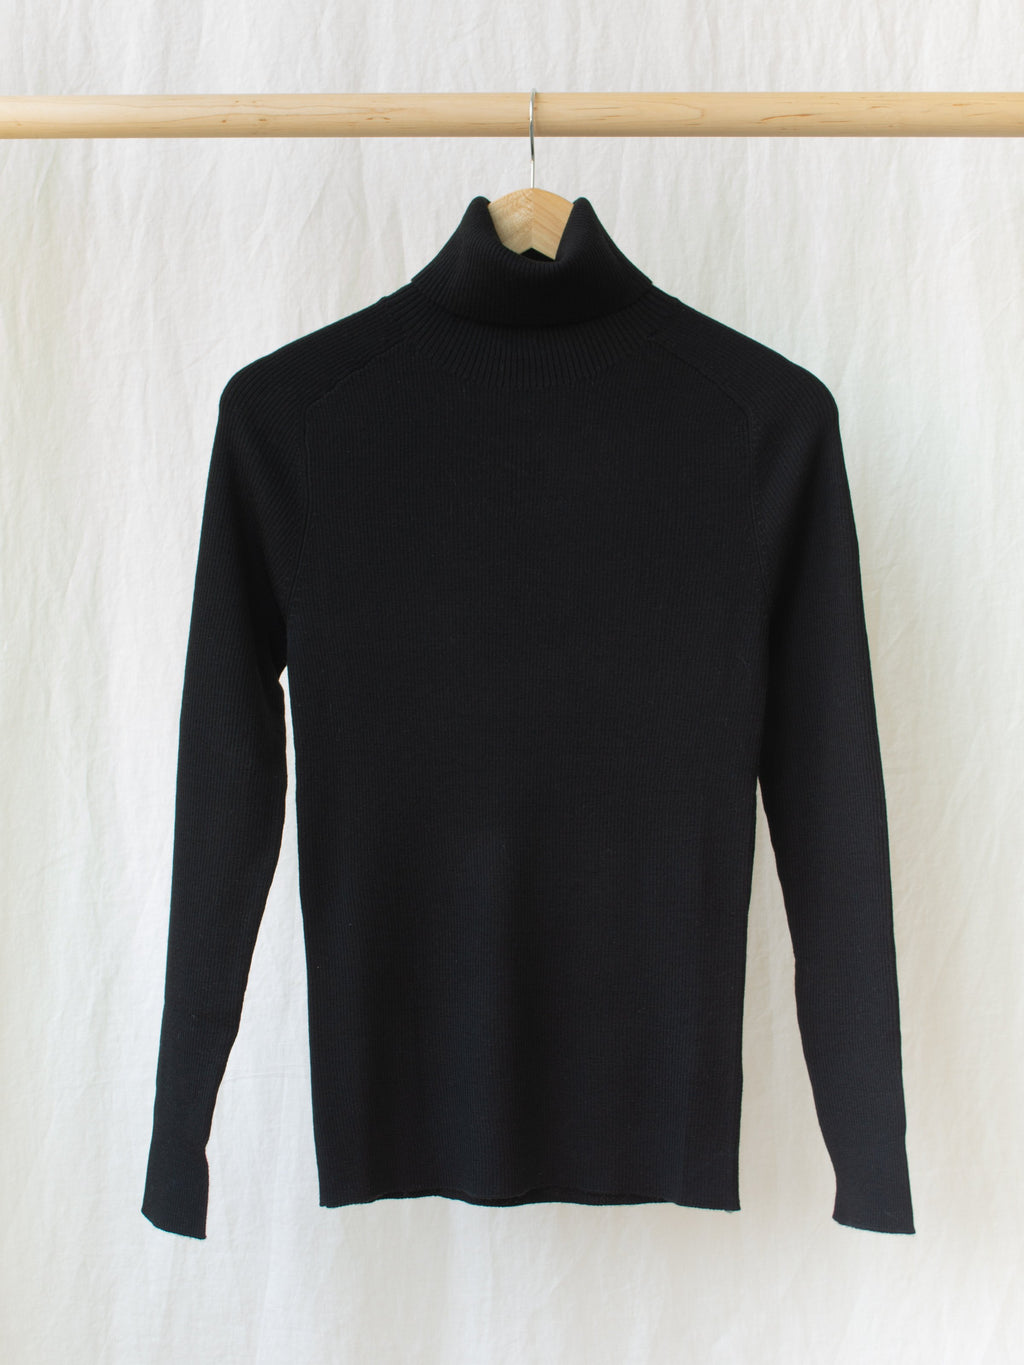 Namu Shop - Studio Nicholson Fine Merino Rib Turtleneck - Black